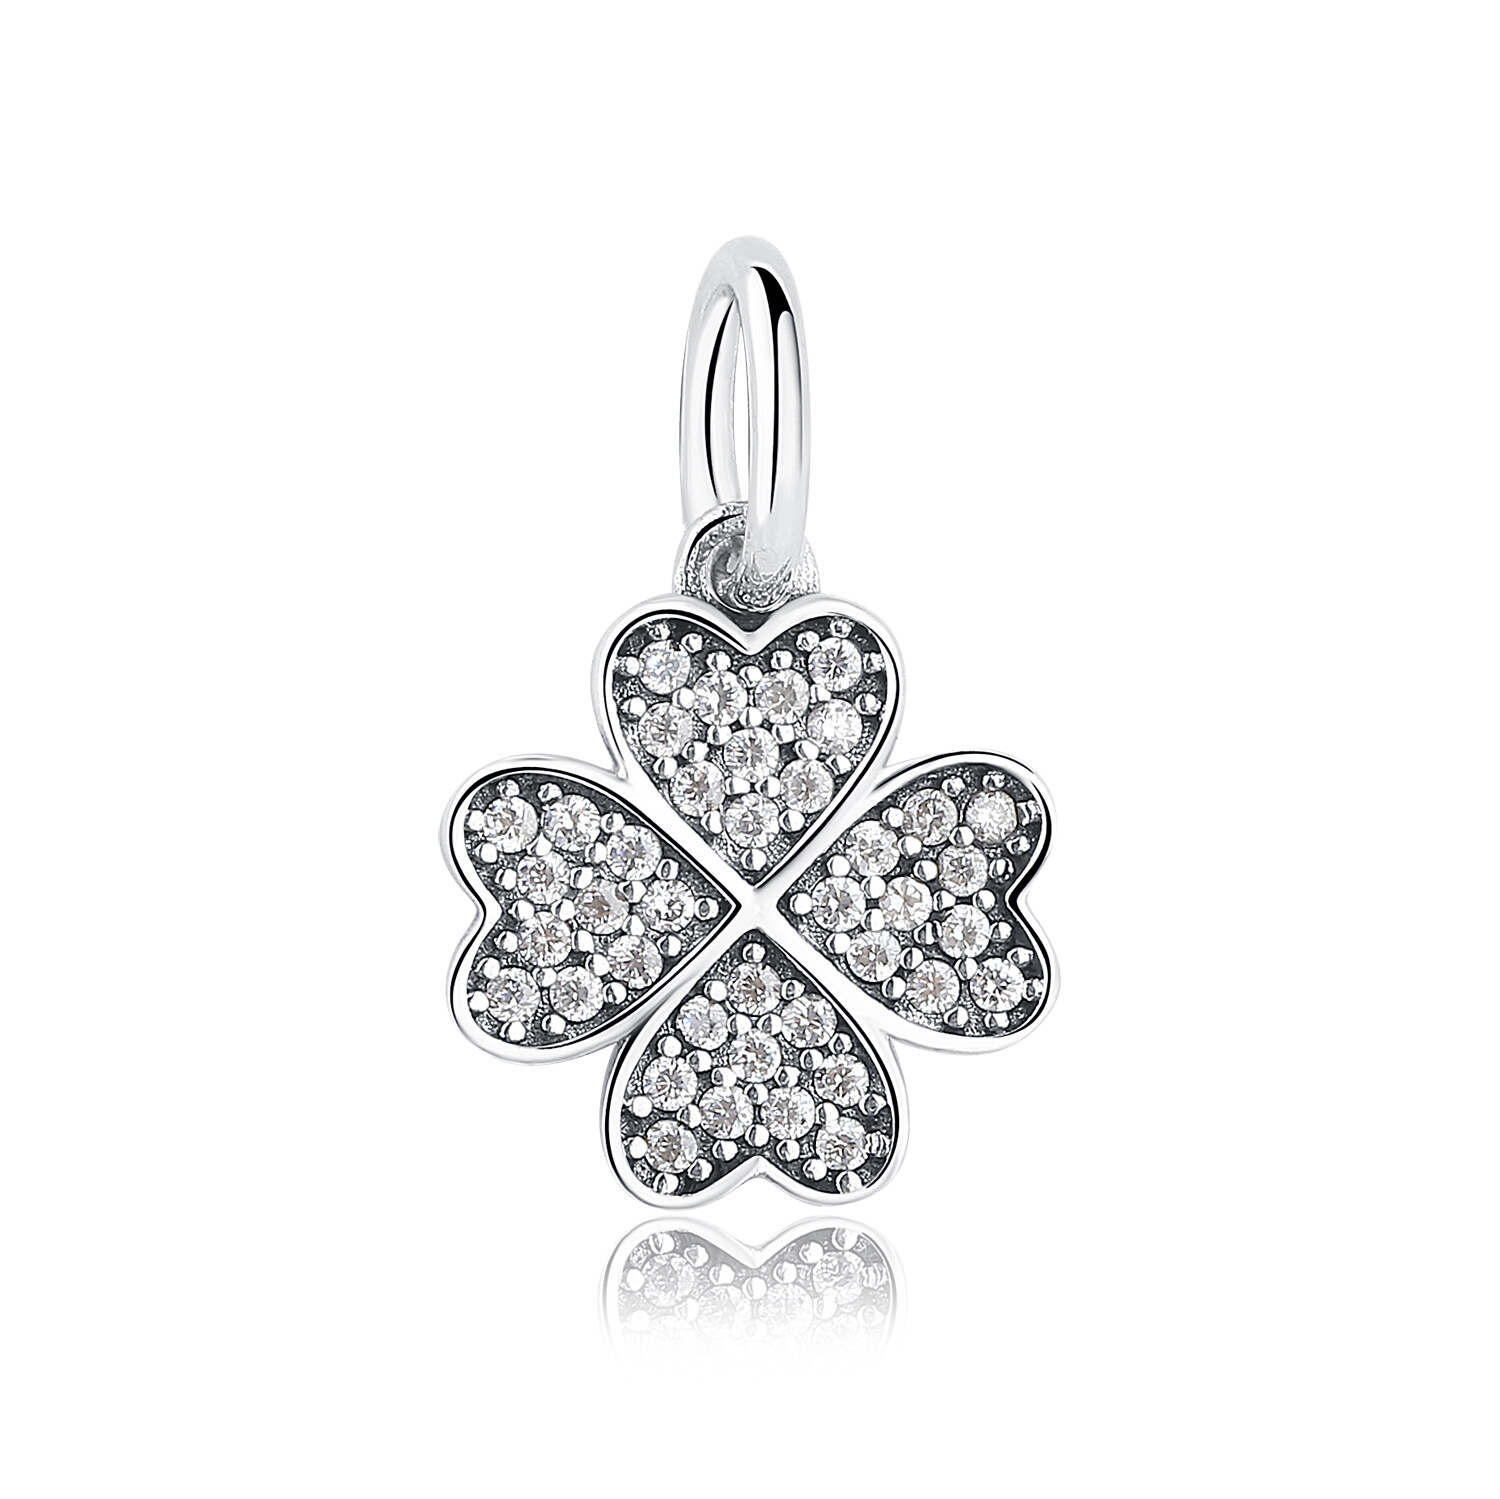 Toko Happiness Four Leaf Clover Pendant Charms Fit Original Bracelet Necklace 925 Sterling Silver Symbol Of Lucky In Love Pas136 Lengkap